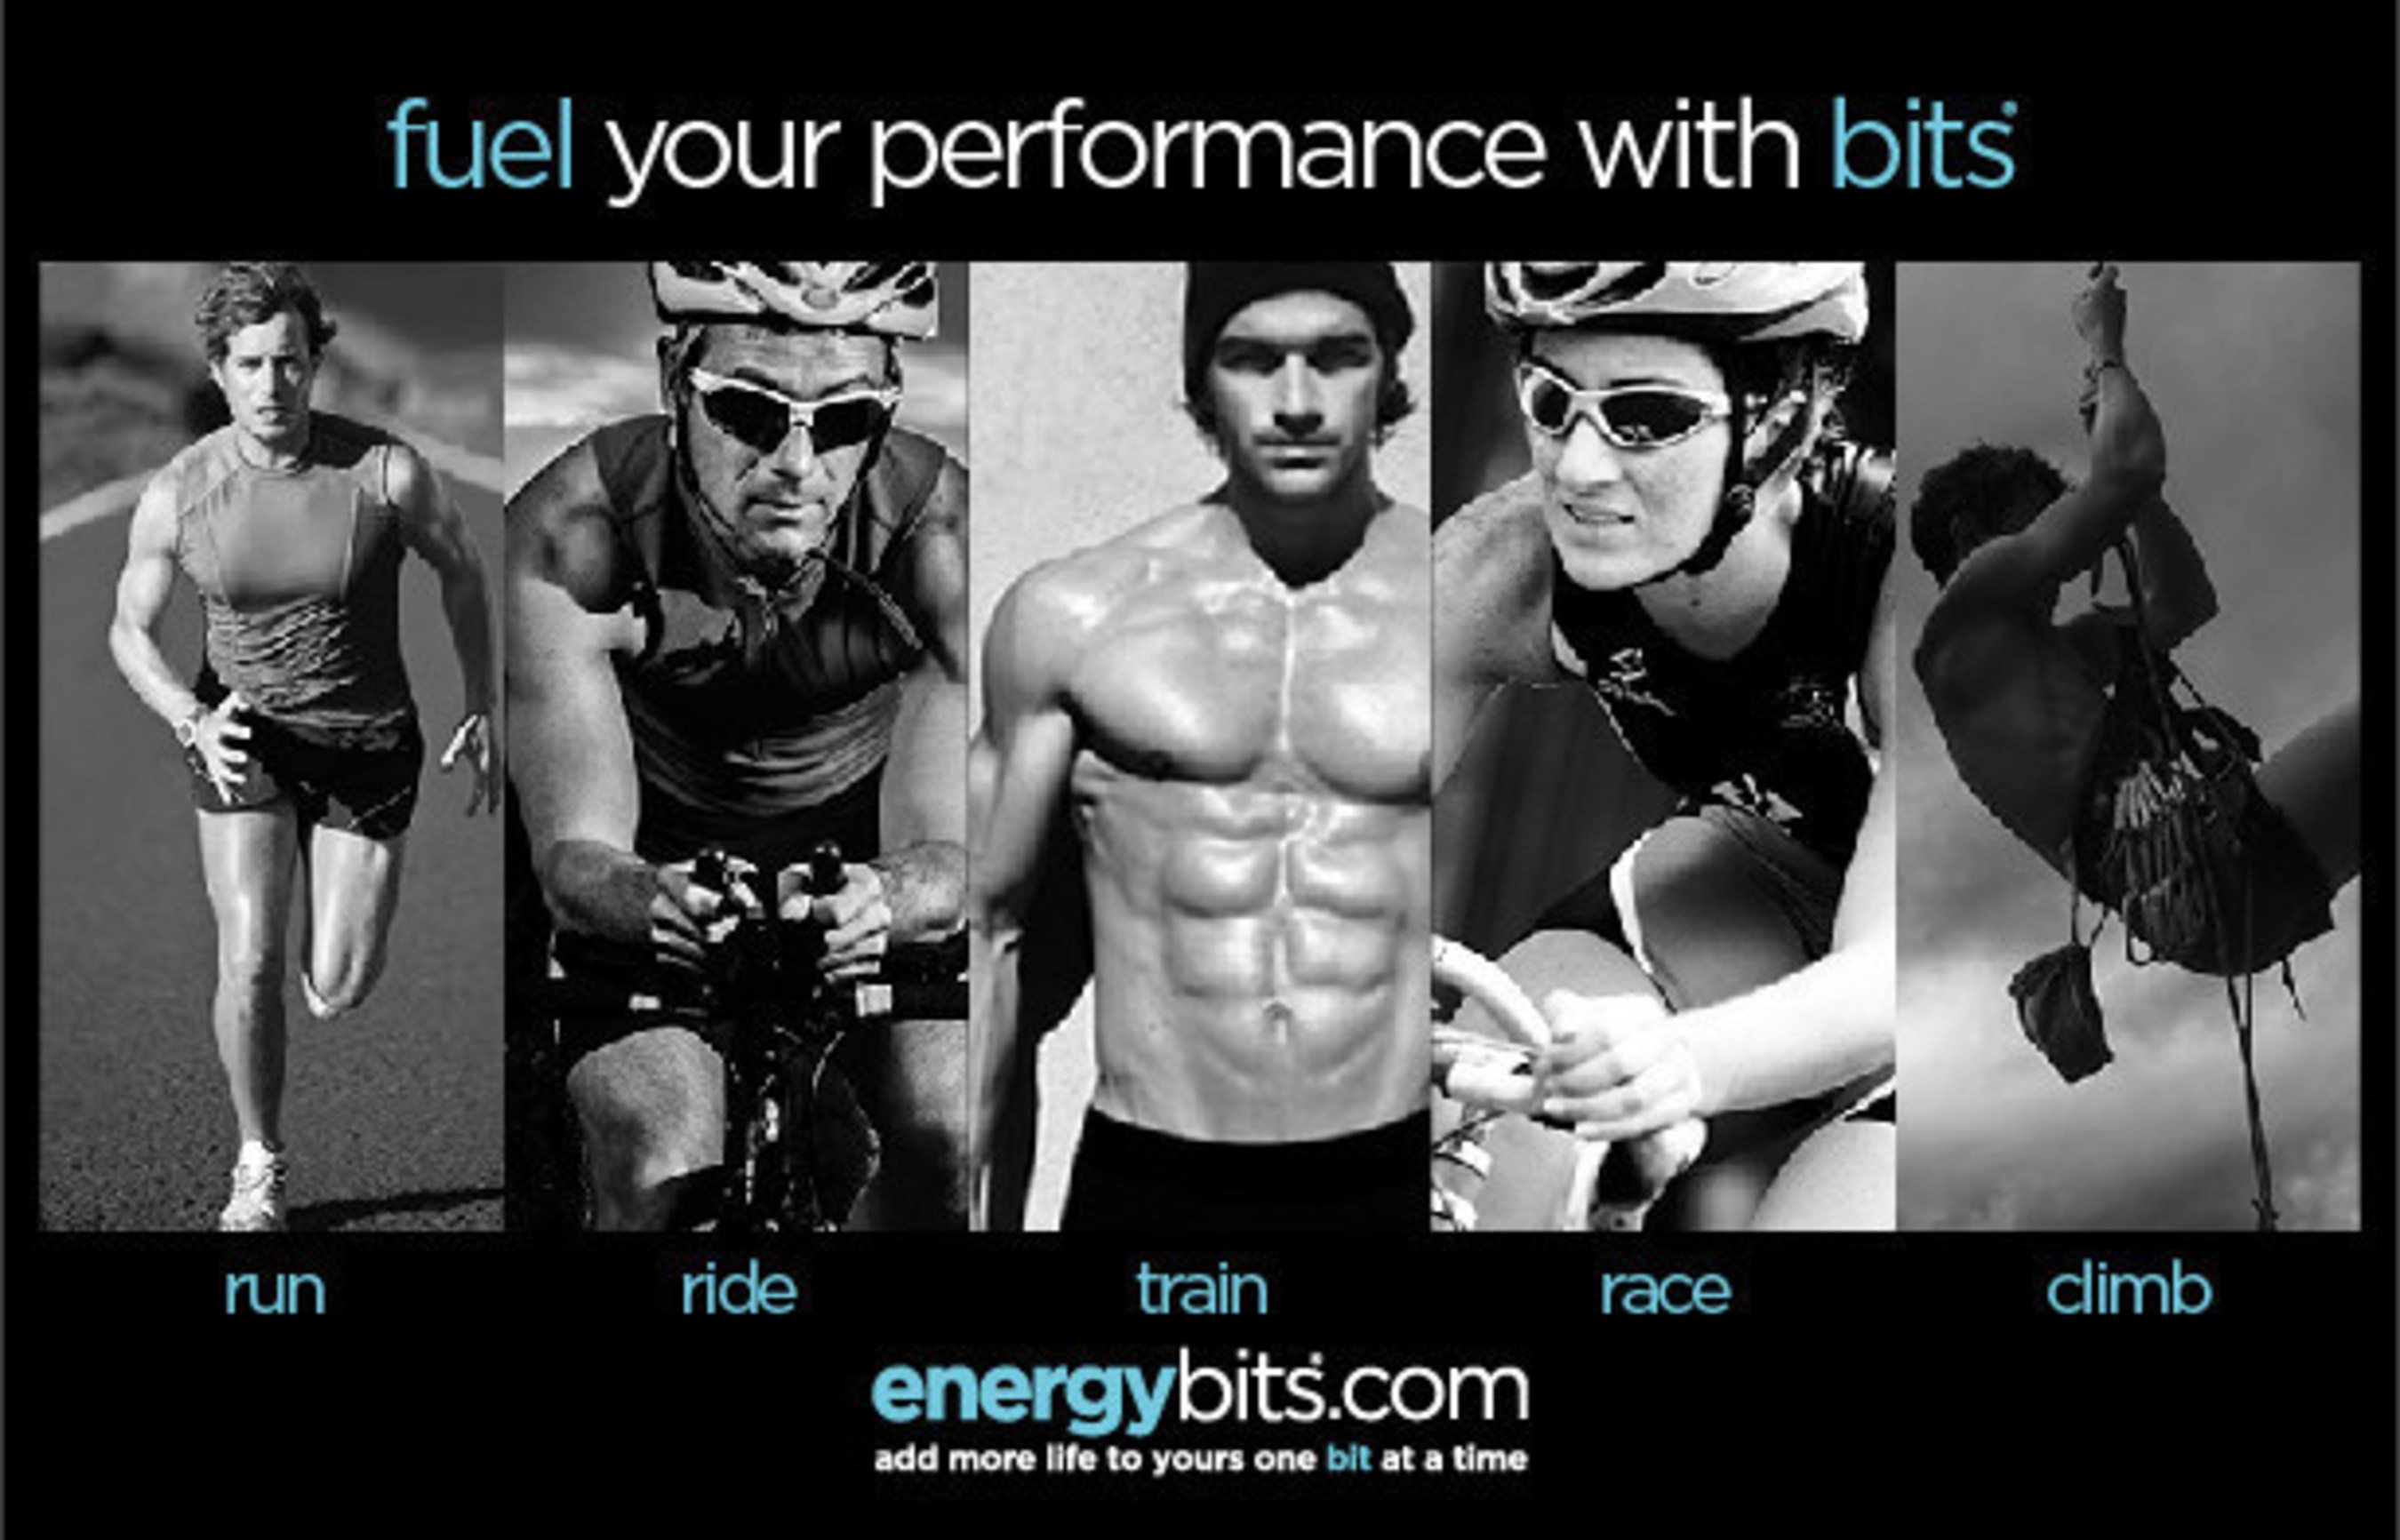 Fuel your performance naturally with ENERGYbits algae tabs